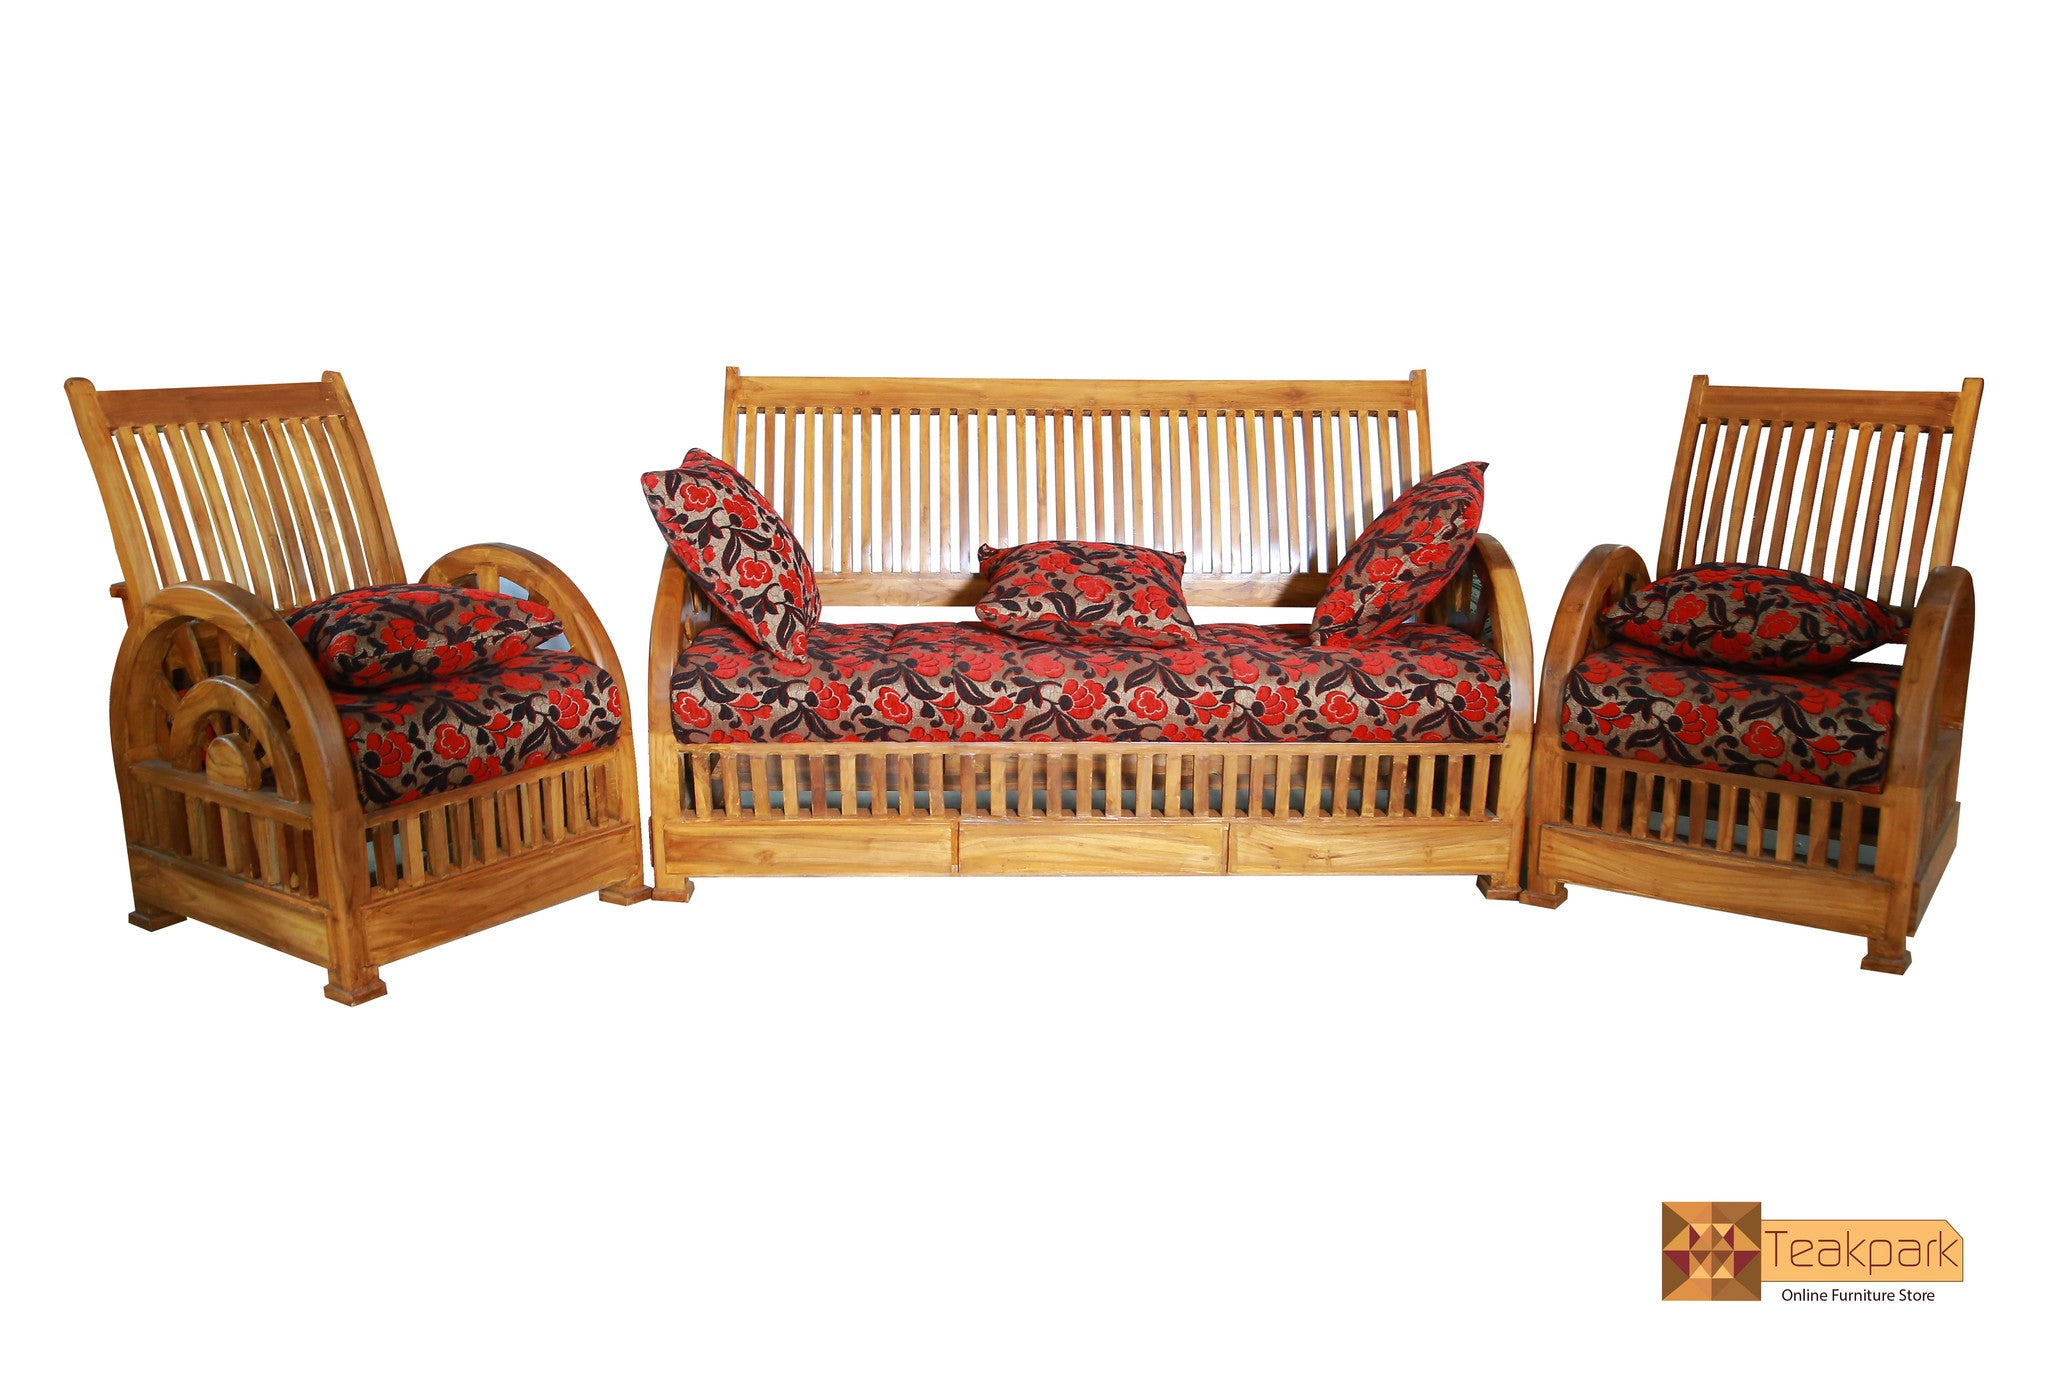 Verona Teak Wood Sofa Set 3 1 1 Seater Teakpark